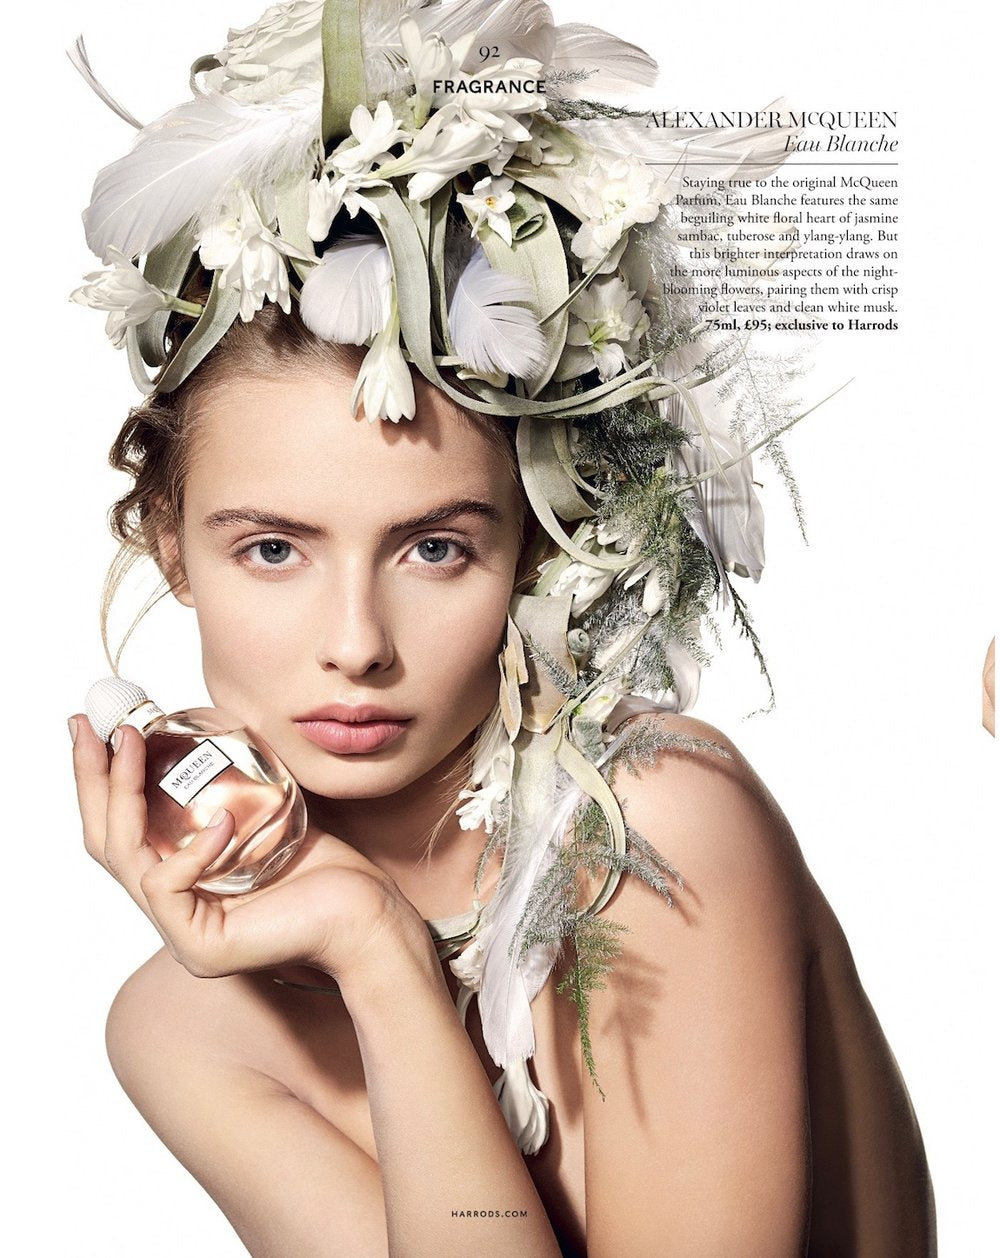 Floral headdress by Neill Strain Floral Couture